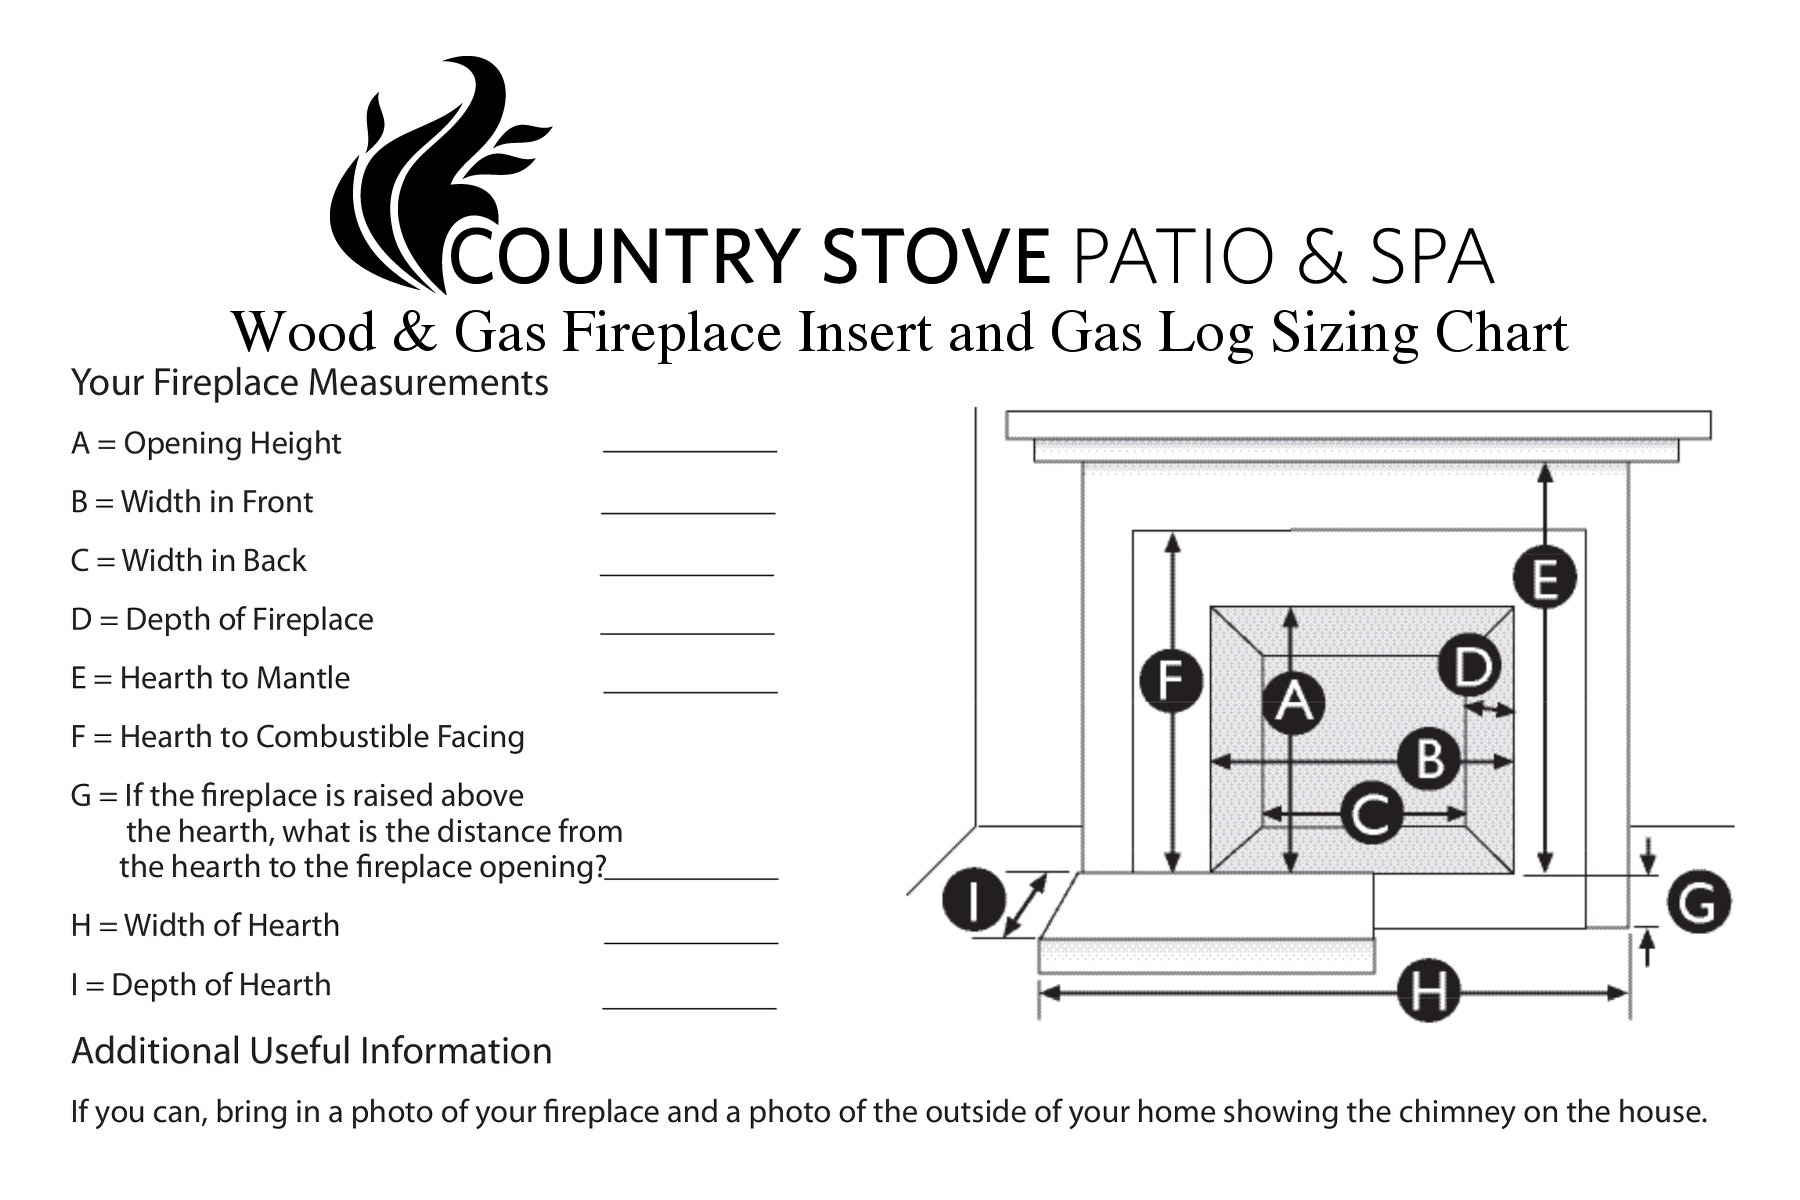 Fireplace Measurement Sheet